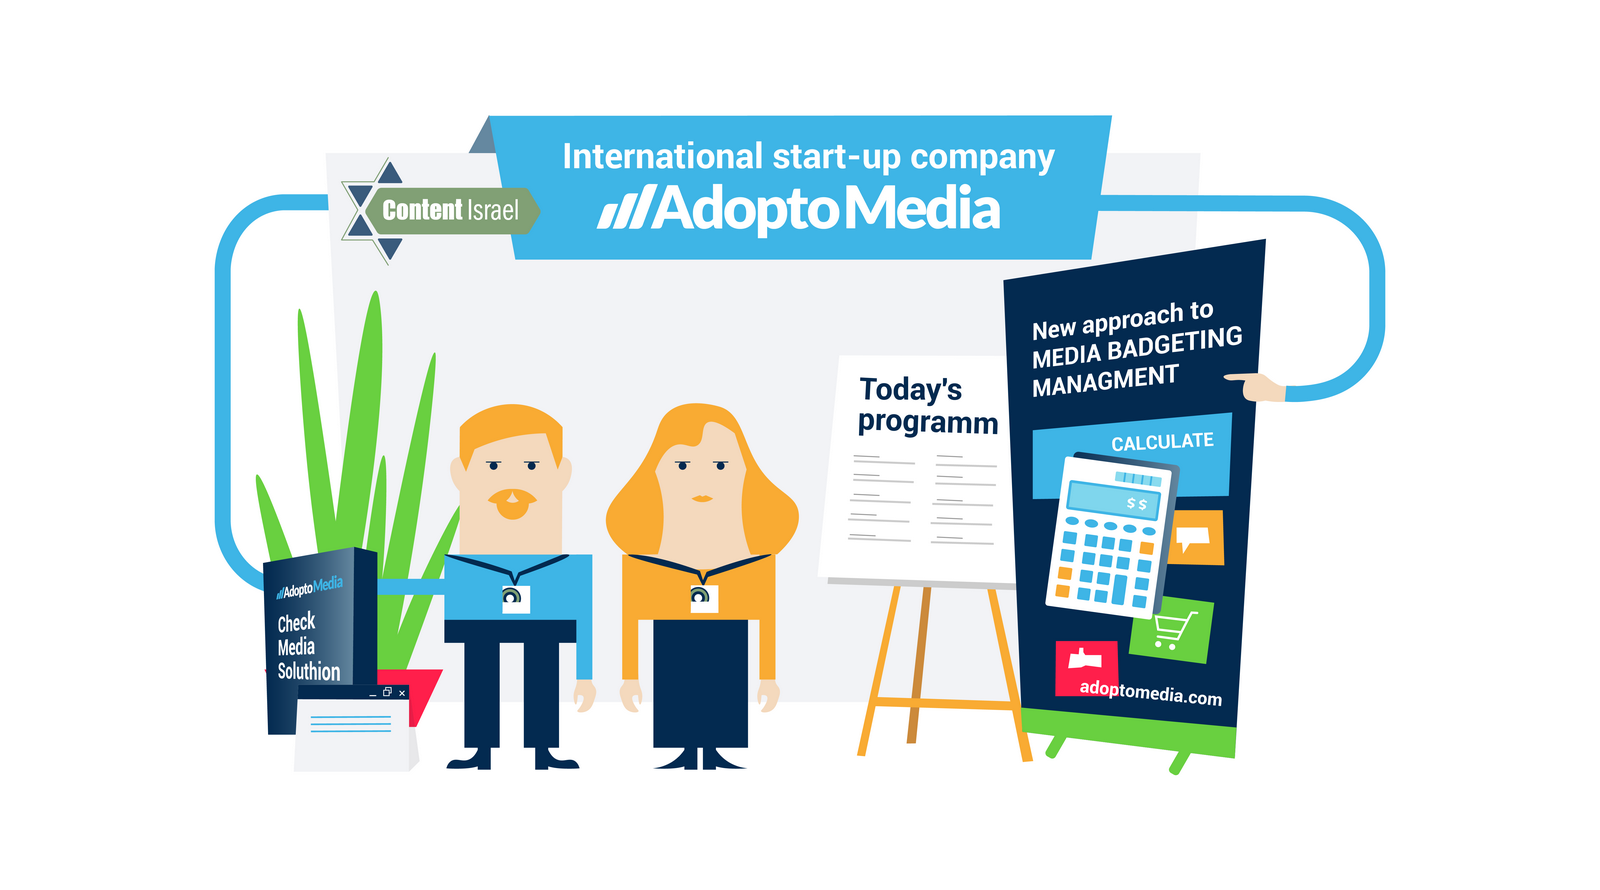 AdoptoMedia, Content Israel, content marketing, marketing, advertising budget optimization, advertising efficiency